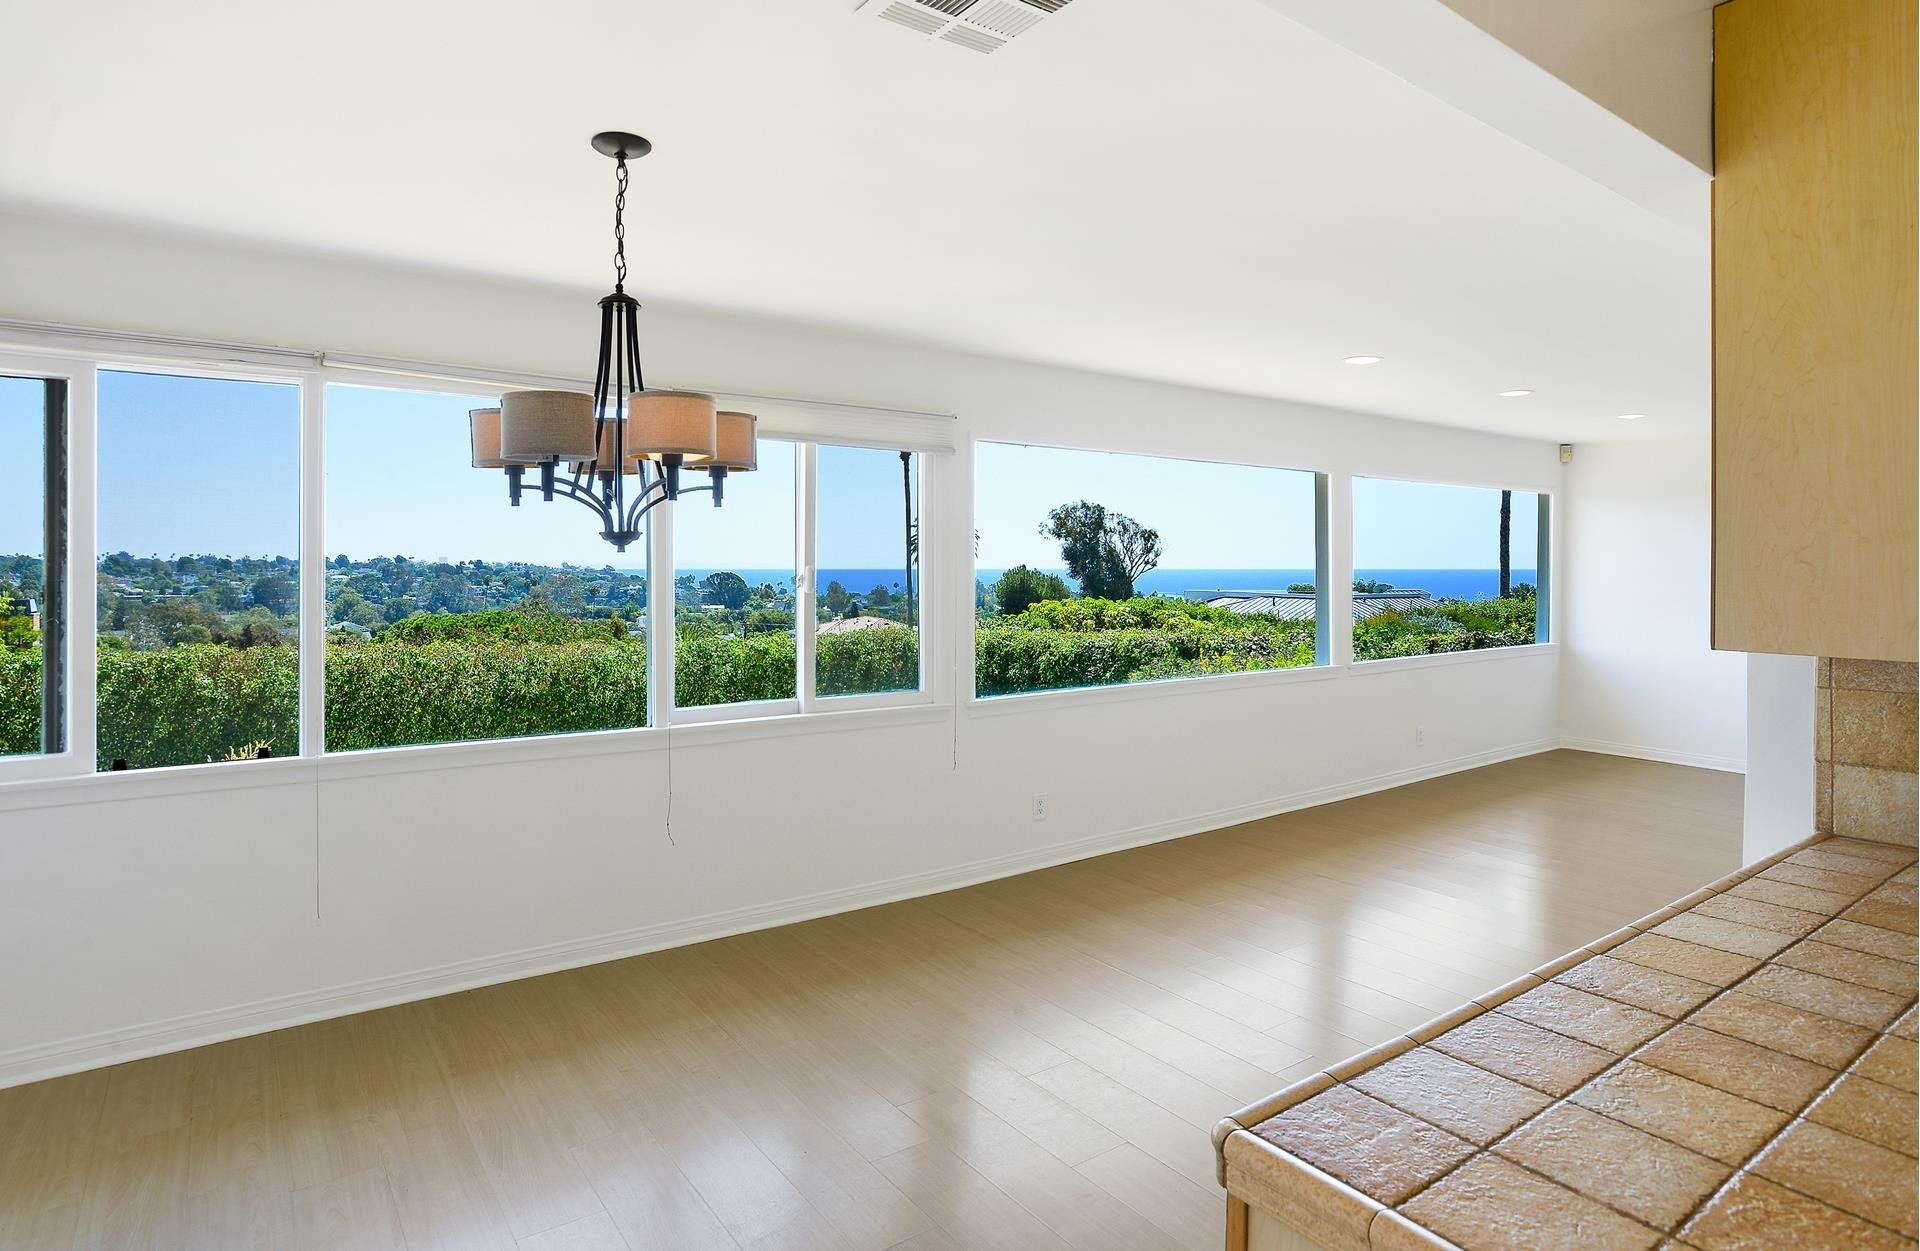 4. Rentals at Pacific Palisades